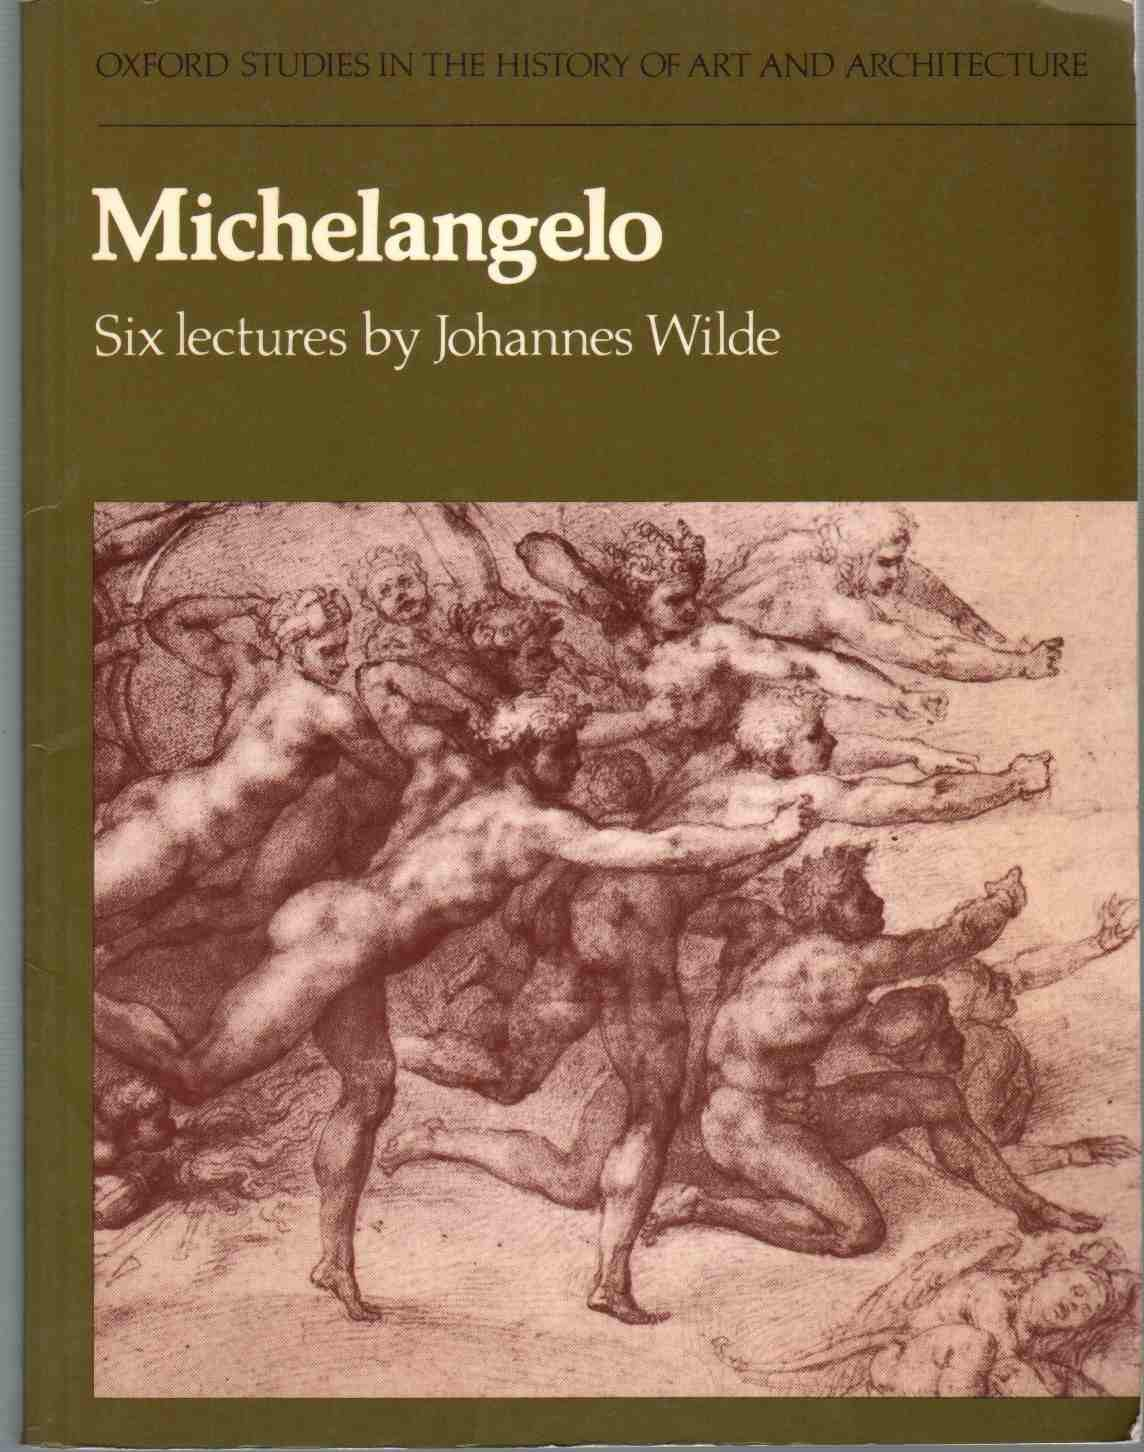 michelangelo six lectures studies in history of art architecture